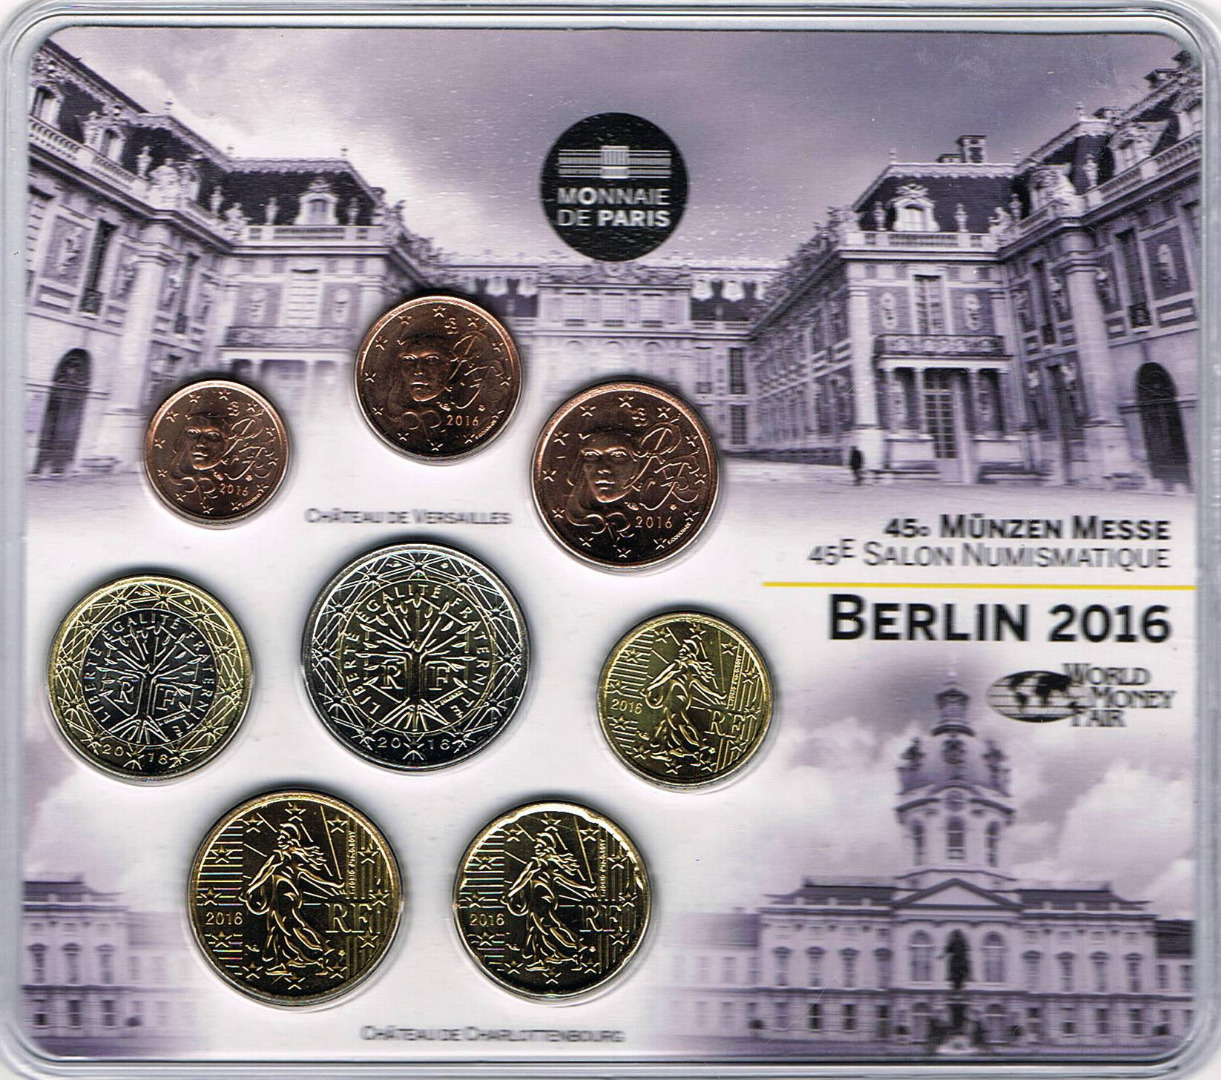 Salon Numismatique France Série Euro 2016 Salon Numismatique De Berlin